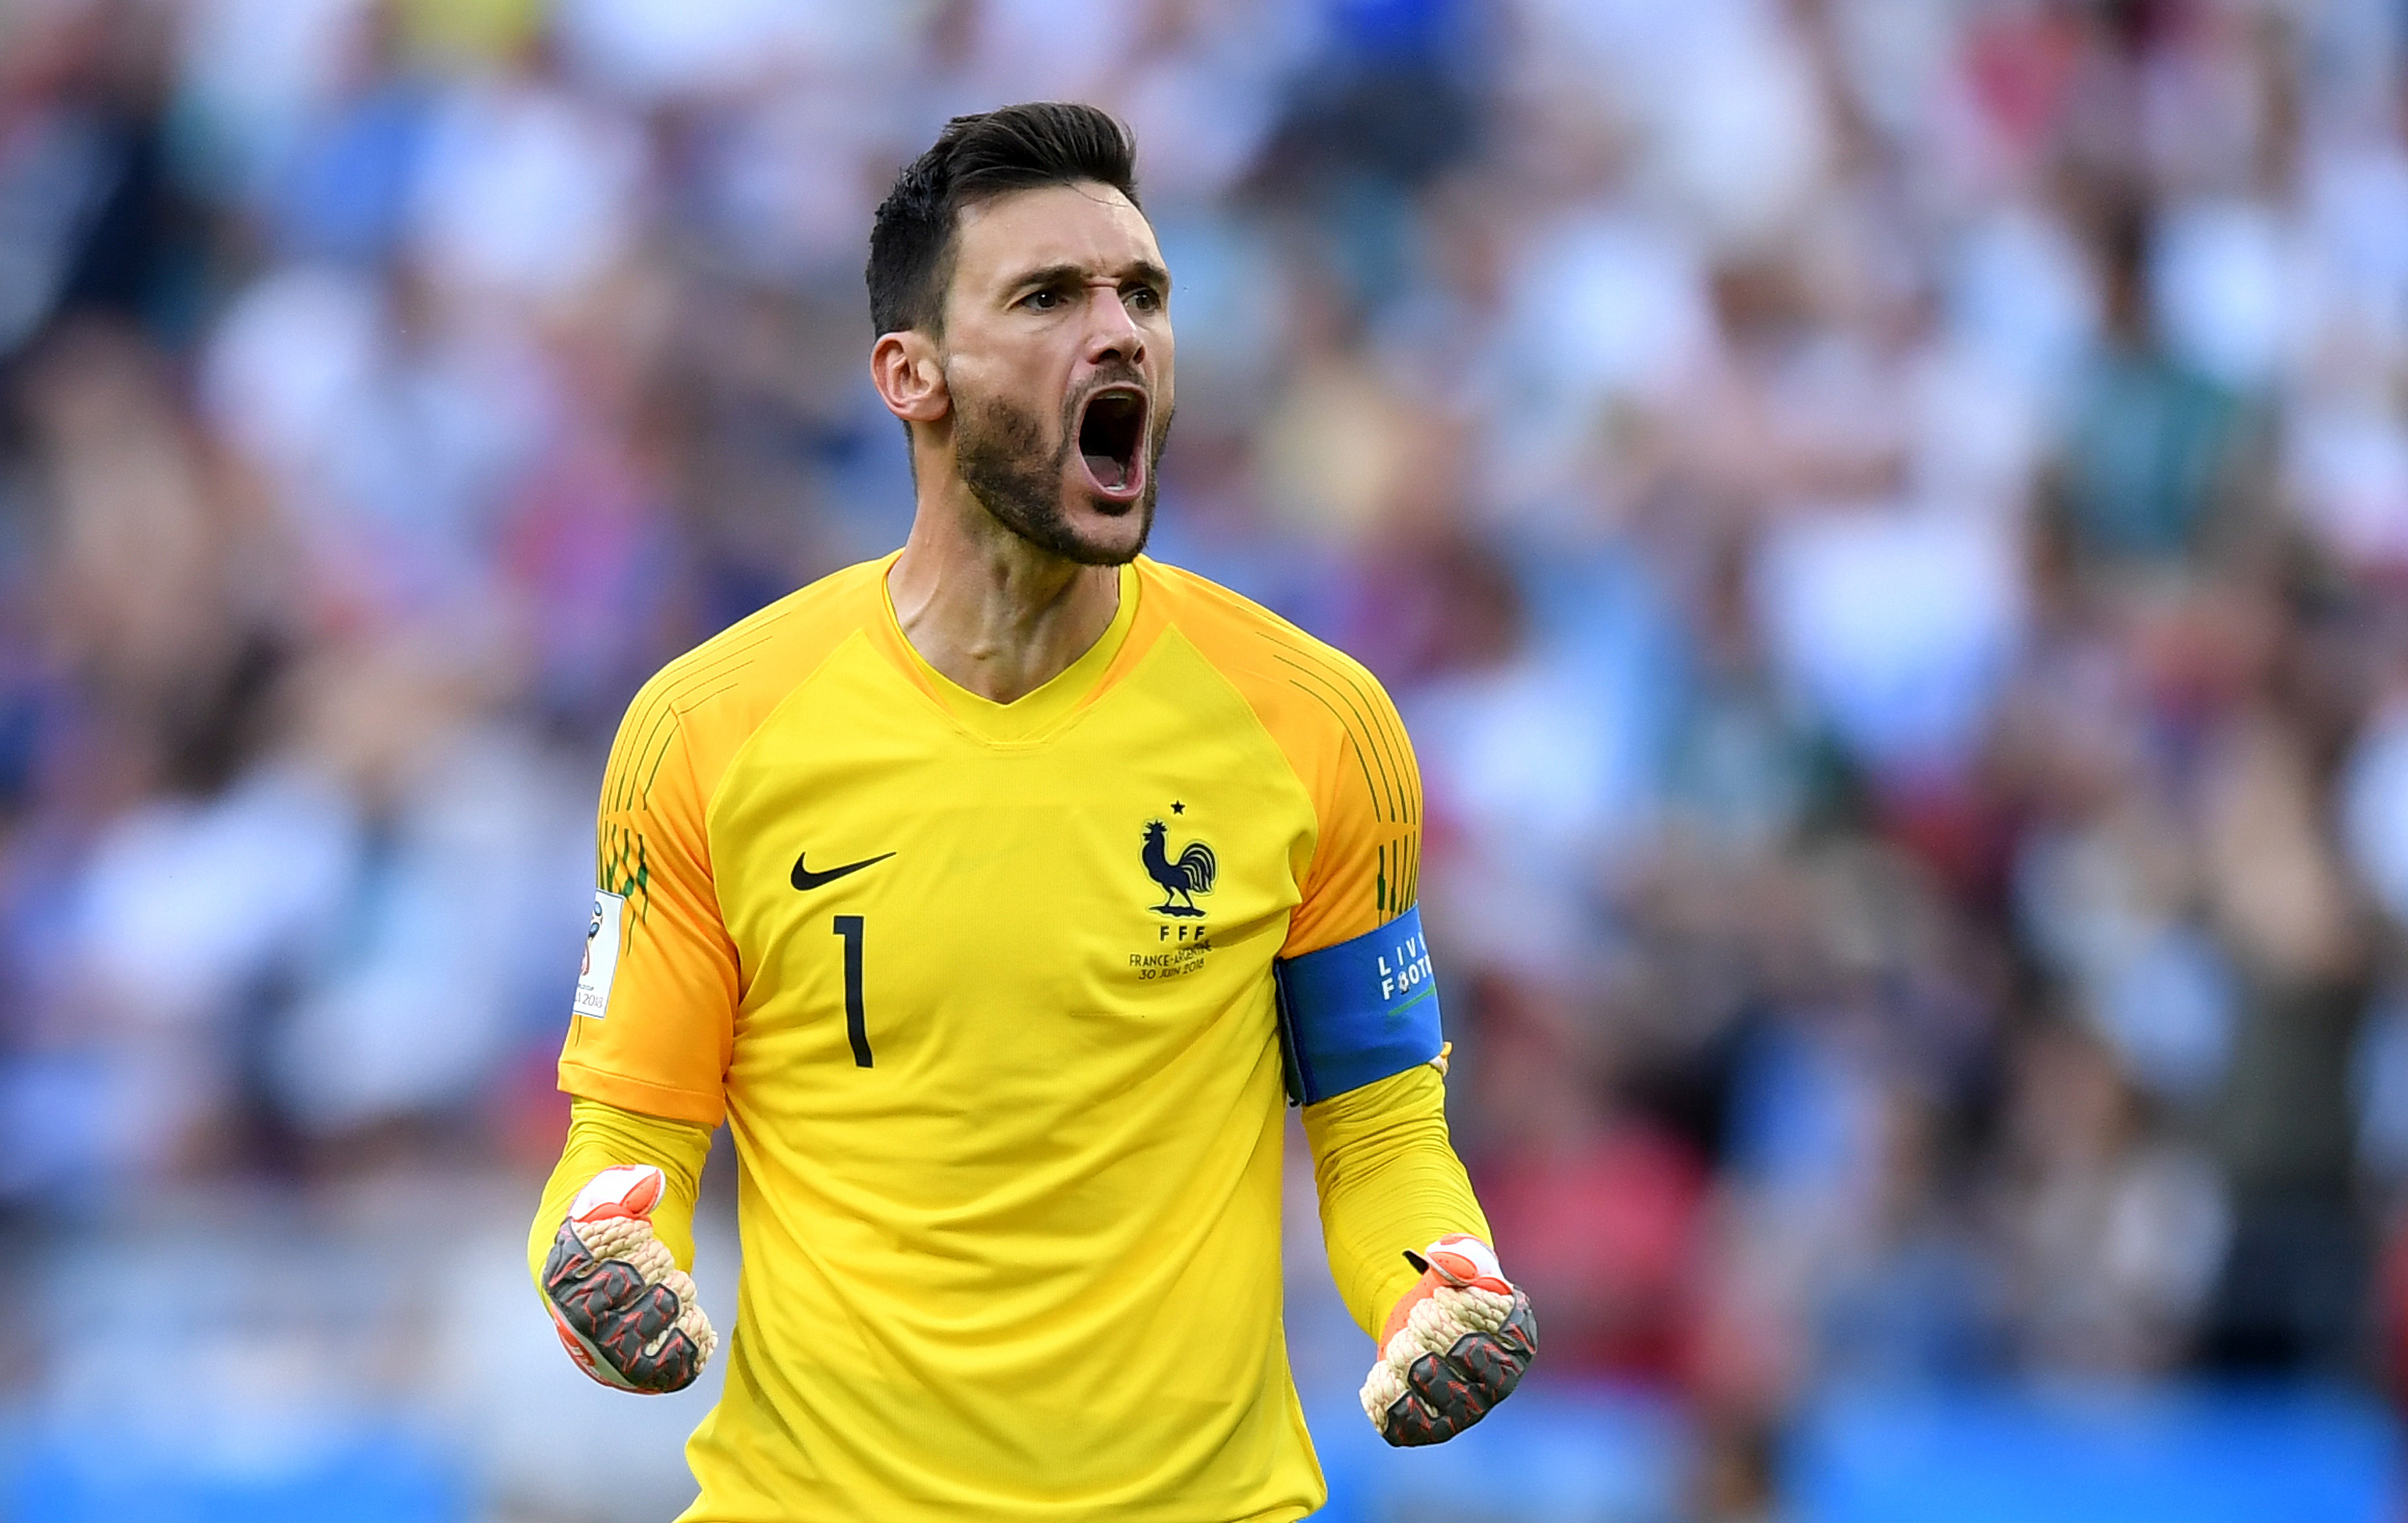 Pochettino confirms Lloris will remain Spurs captain after drink-drive sentence